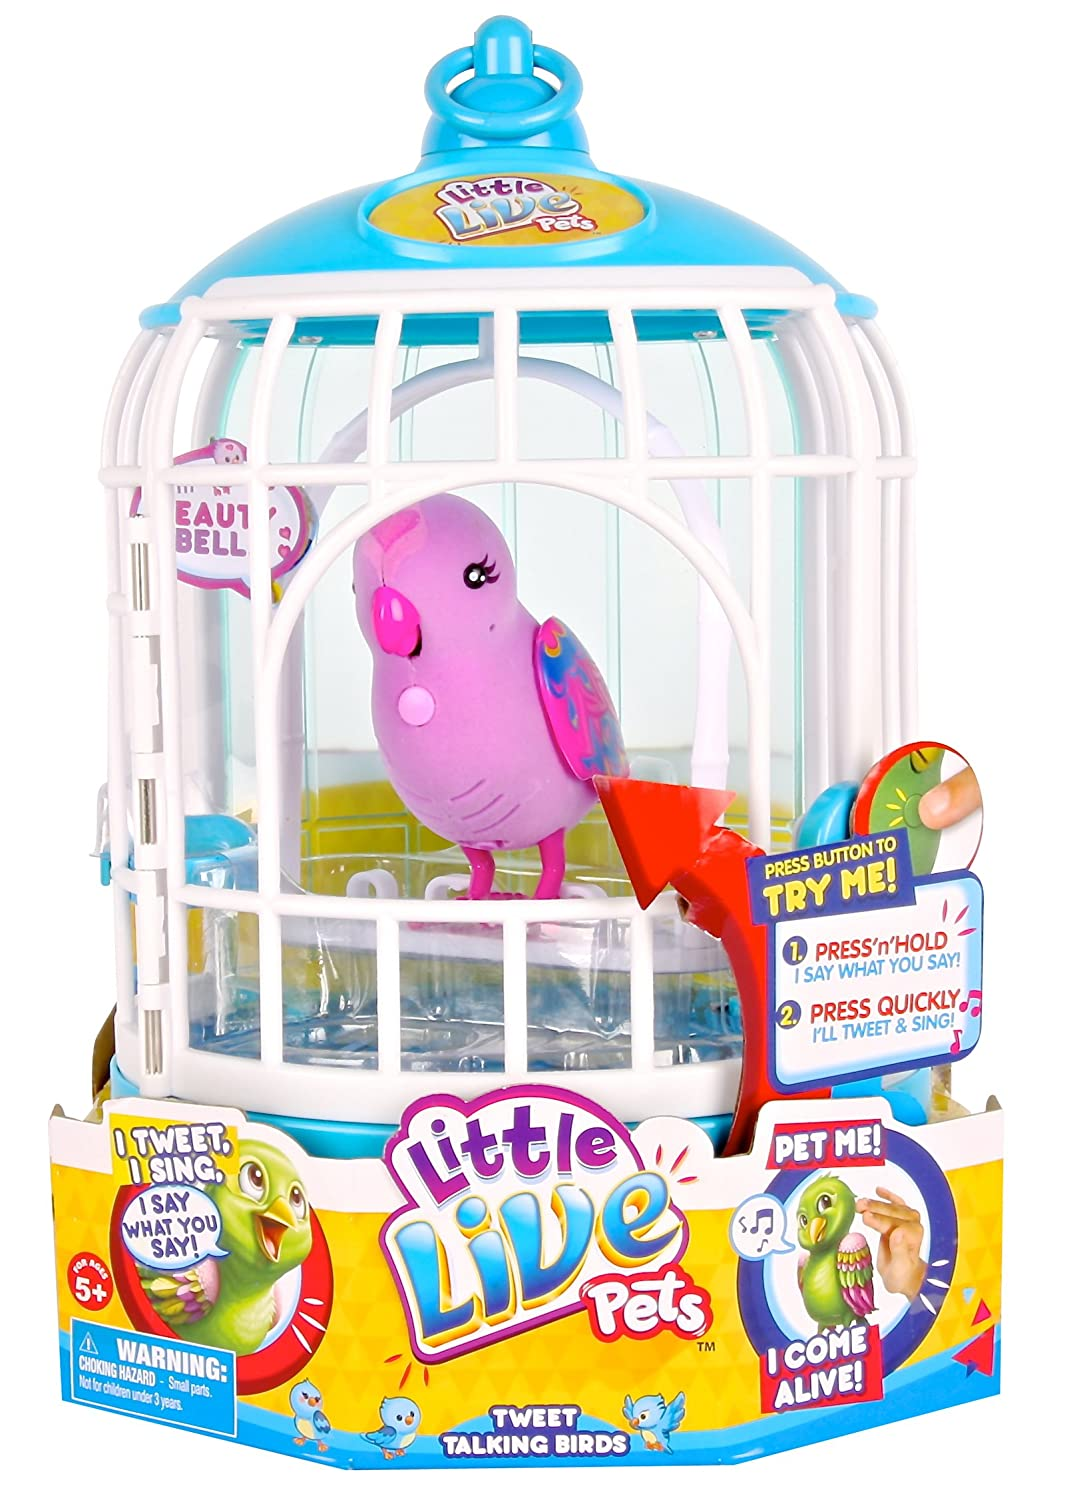 Little Live Pets Cage #2 Beauty Bella Bird Cage Moose Toys 28024